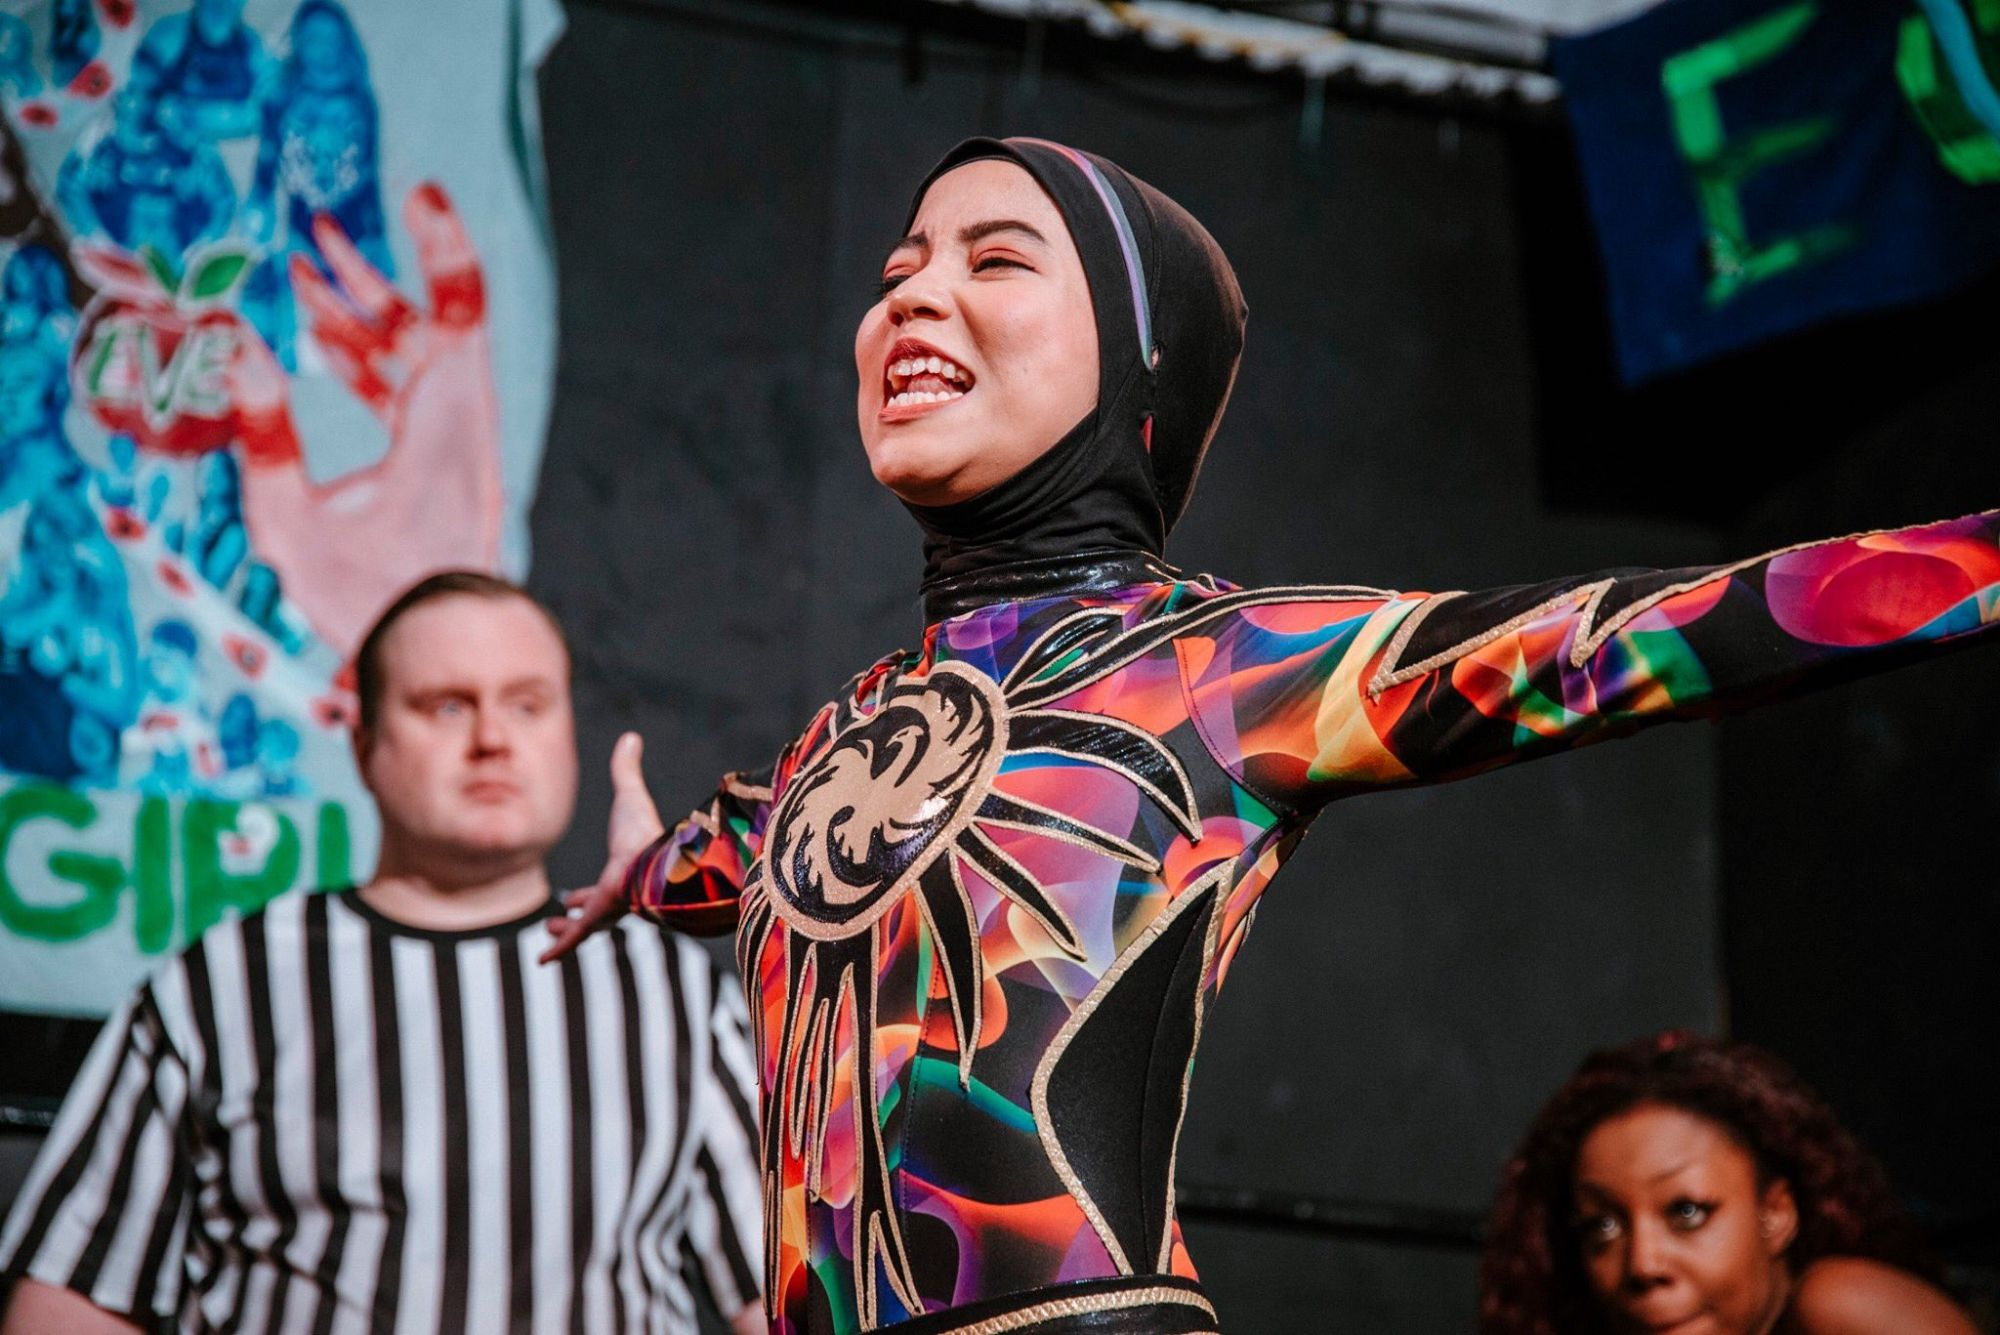 The World's First Hijab-Wearing Pro Wrestler, Nor 'Phoenix' Diana On Facing Life's Toughest Blows